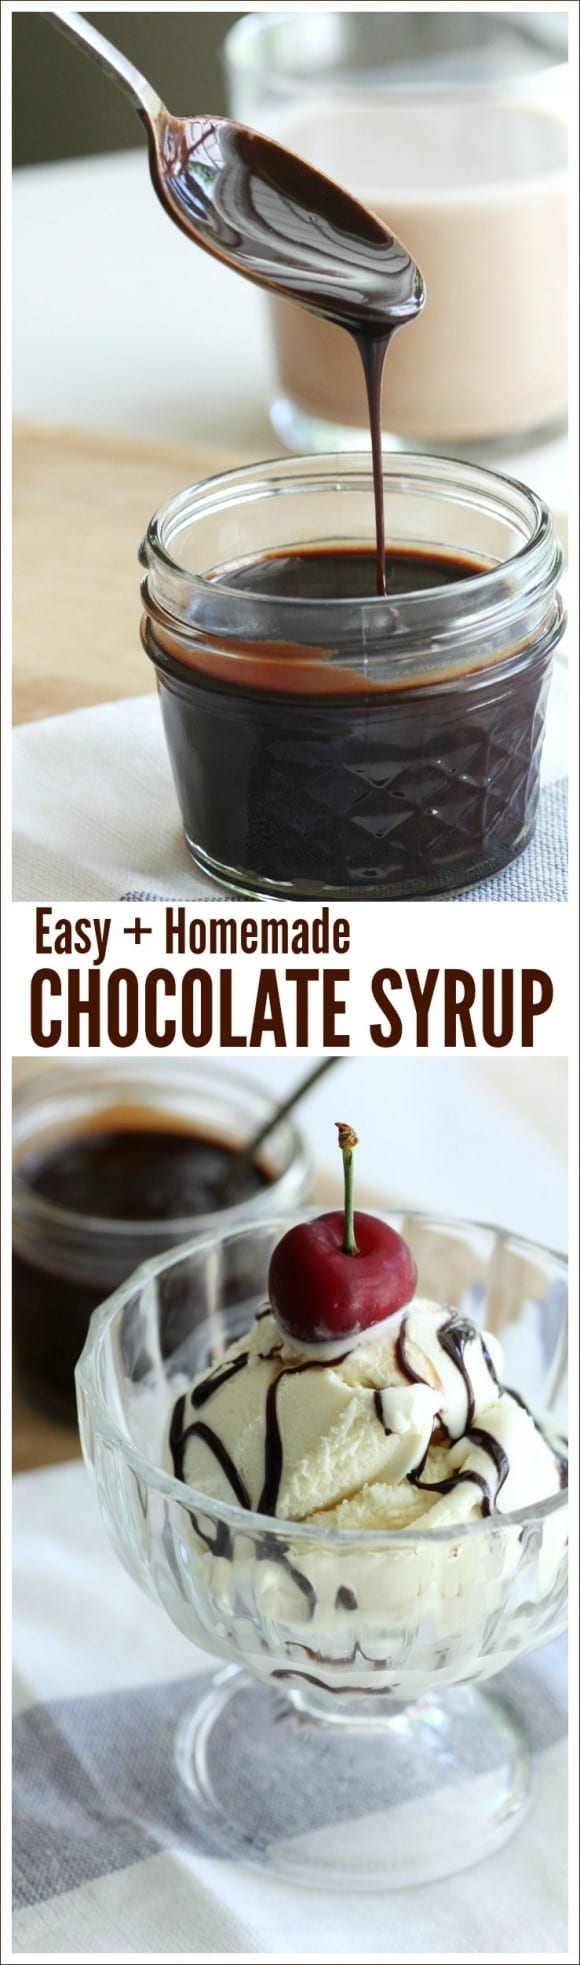 Easy Chocolate Syrup Recipe | CatchMyParty.com